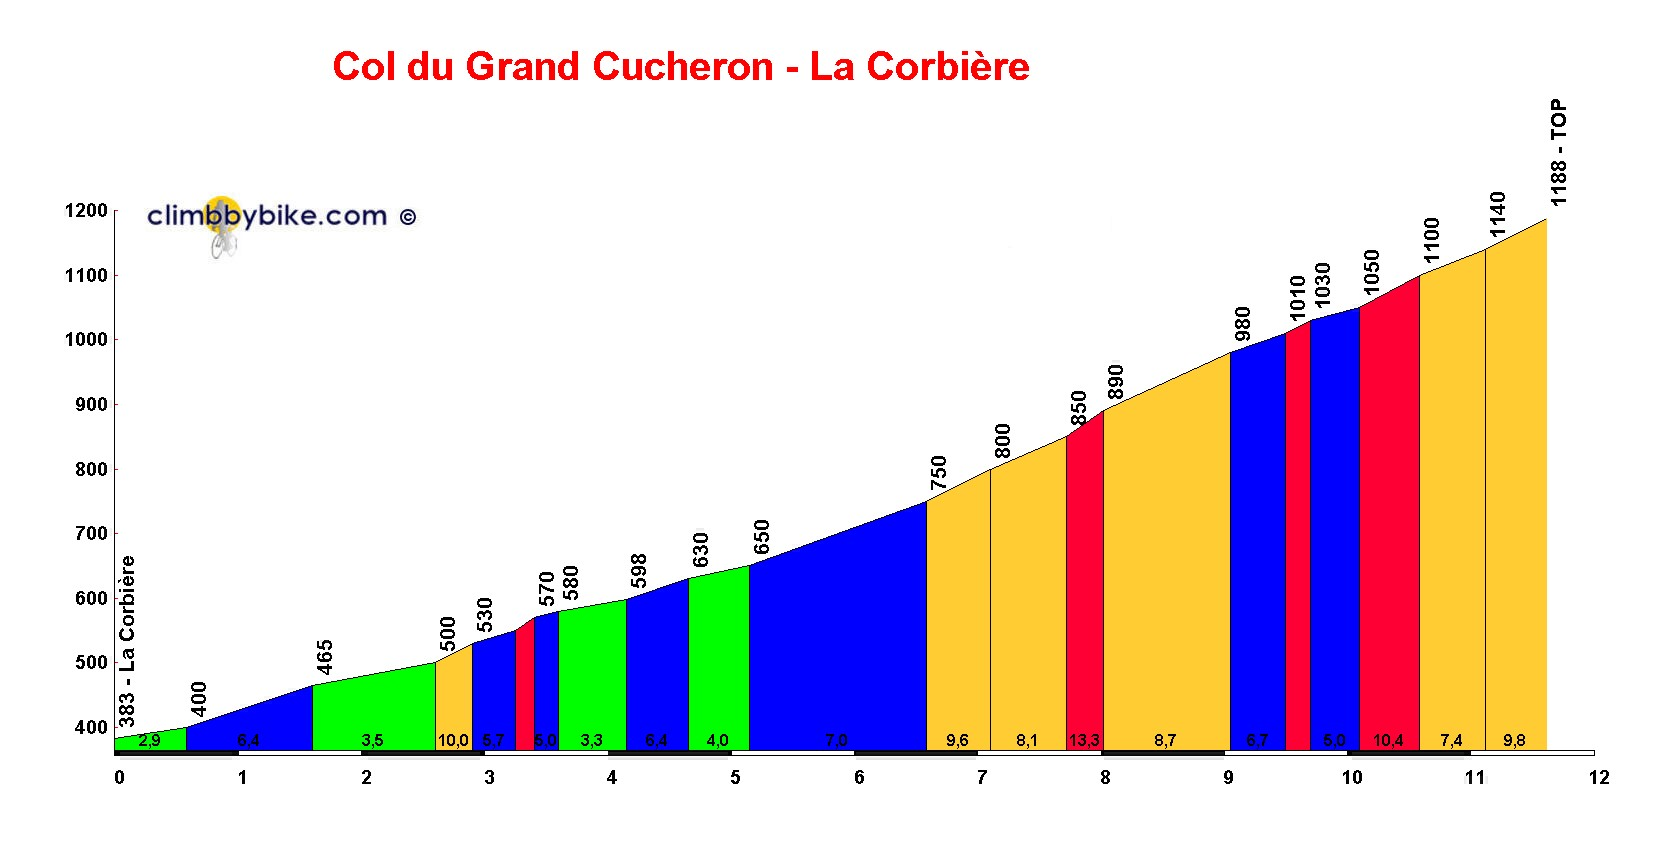 Elevation profile for Col du Grand Cucheron